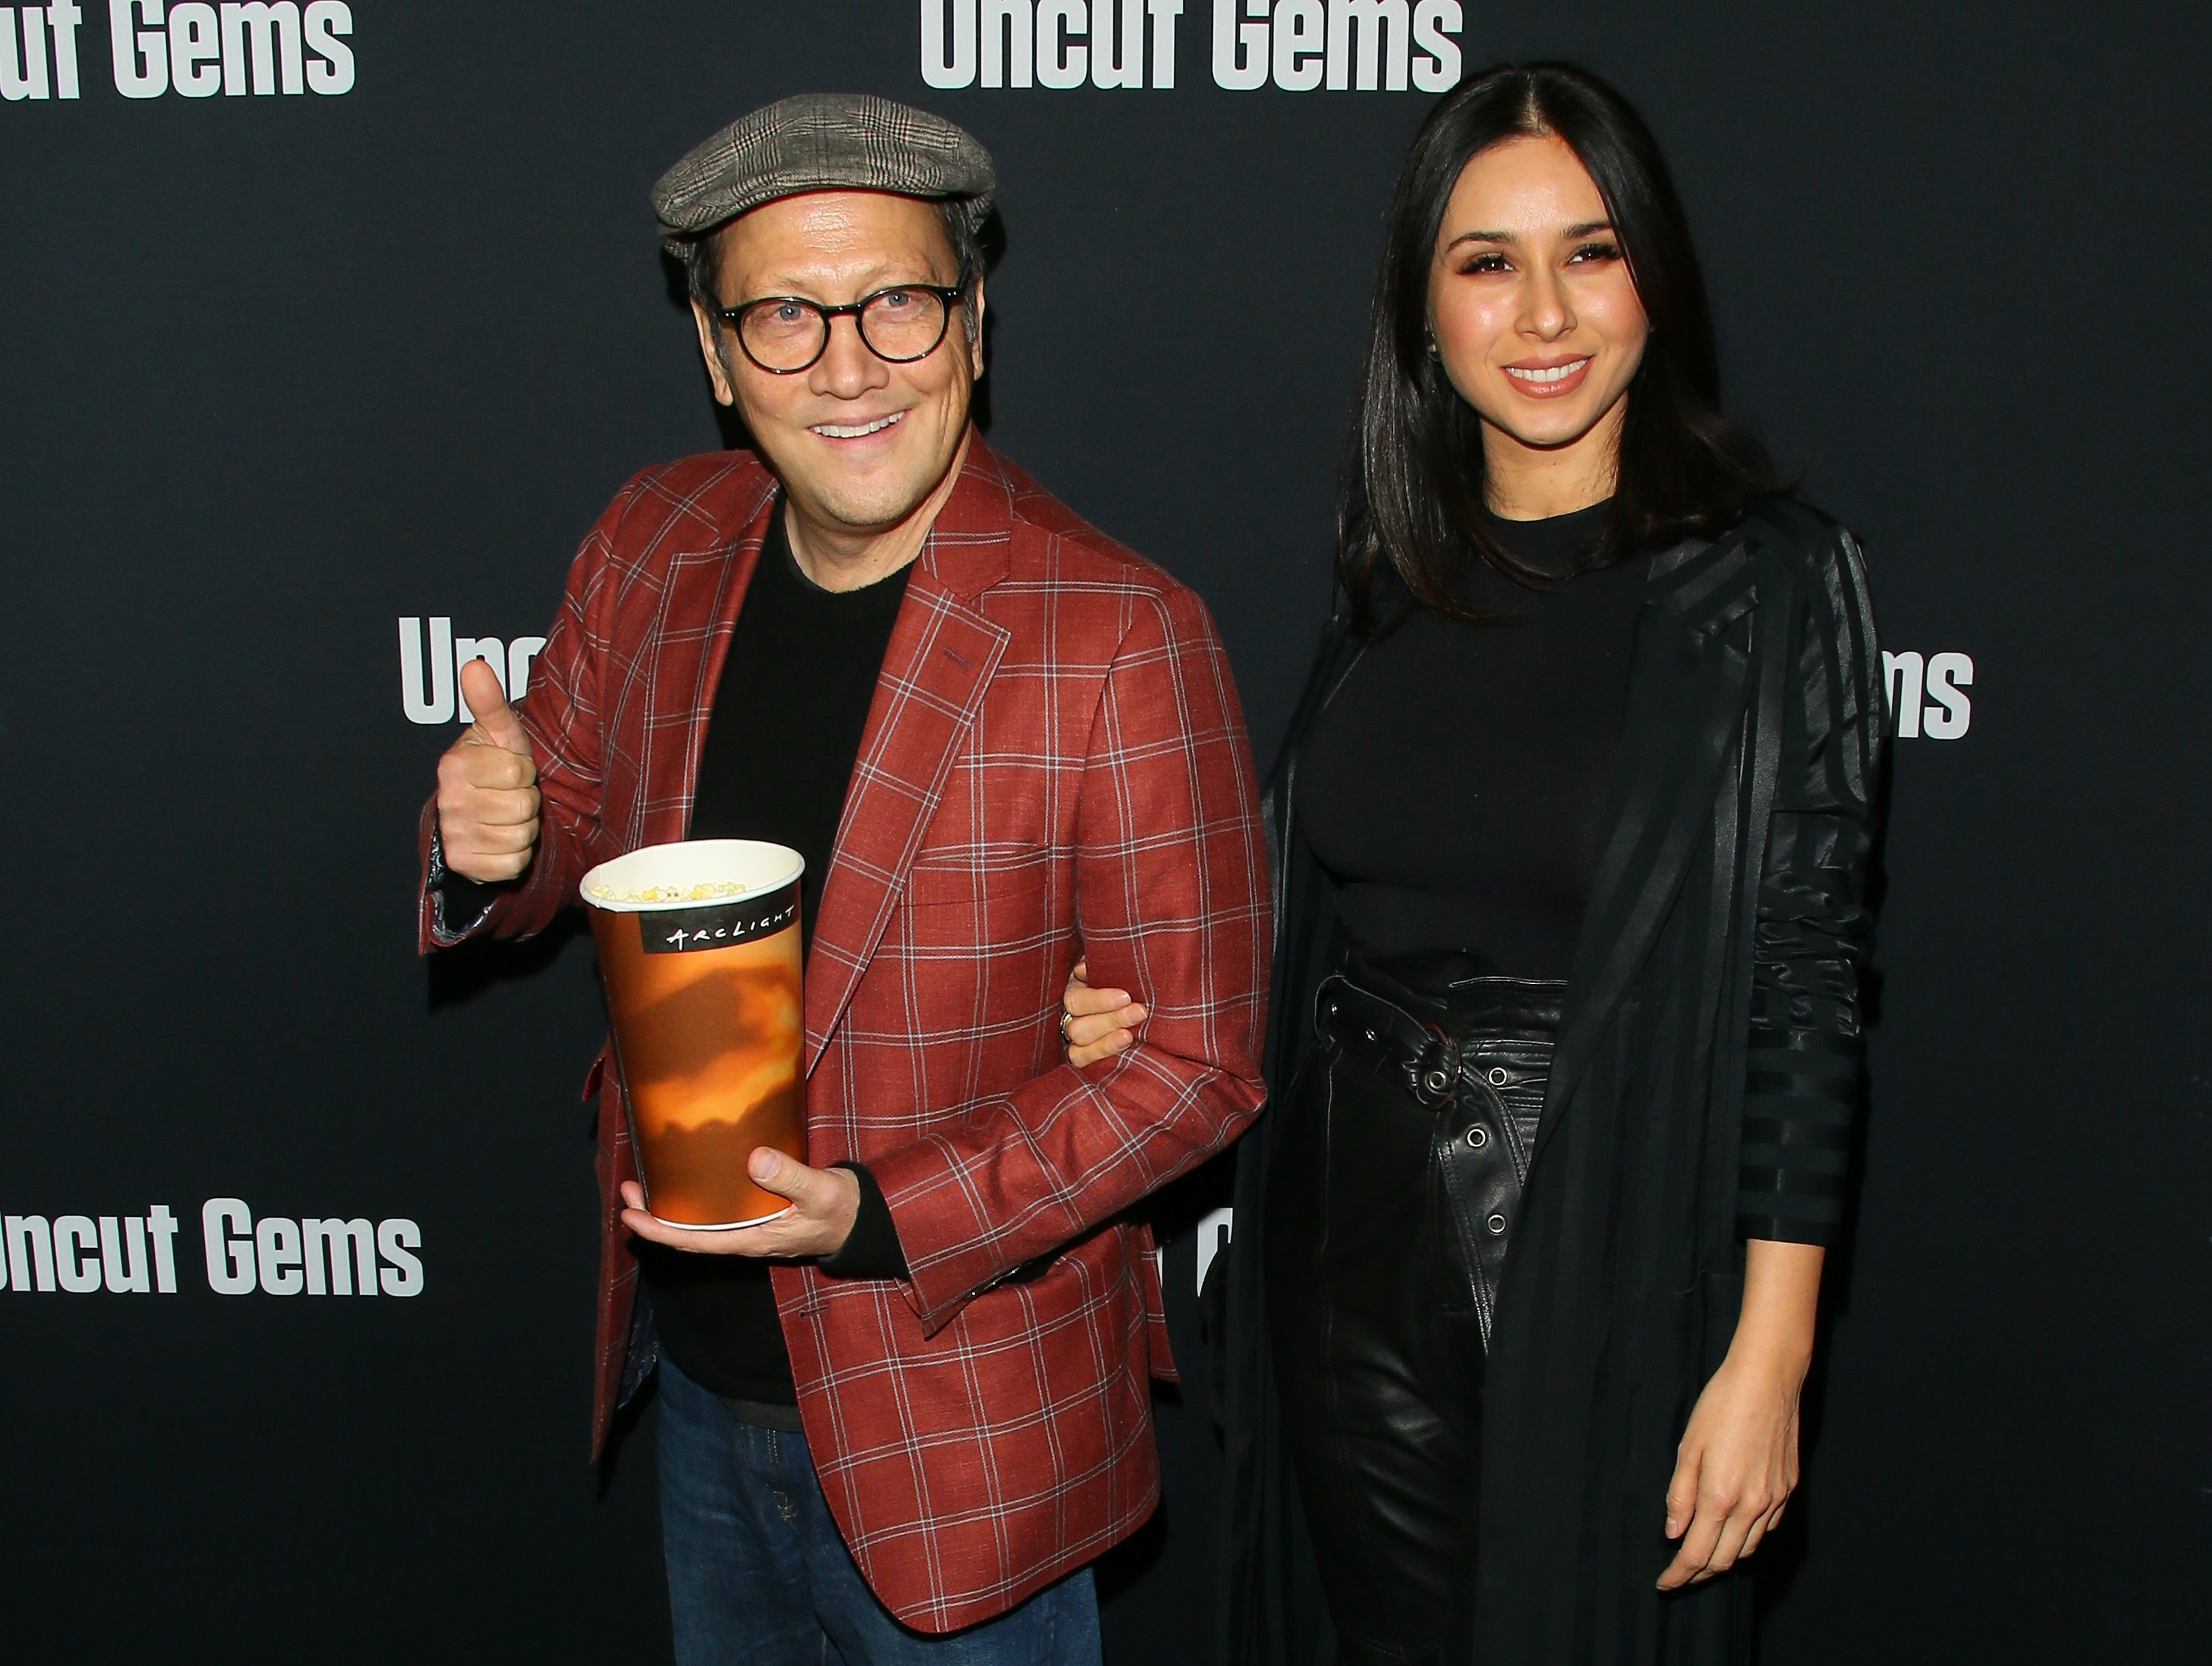 """Rob Schneider and Patricia Azarcoya Schneider attending the premiere of  """"Uncut Gems"""" at The Dome at Arclight Hollywood  in Hollywood, California, in December 2019. I Image: Getty Images."""